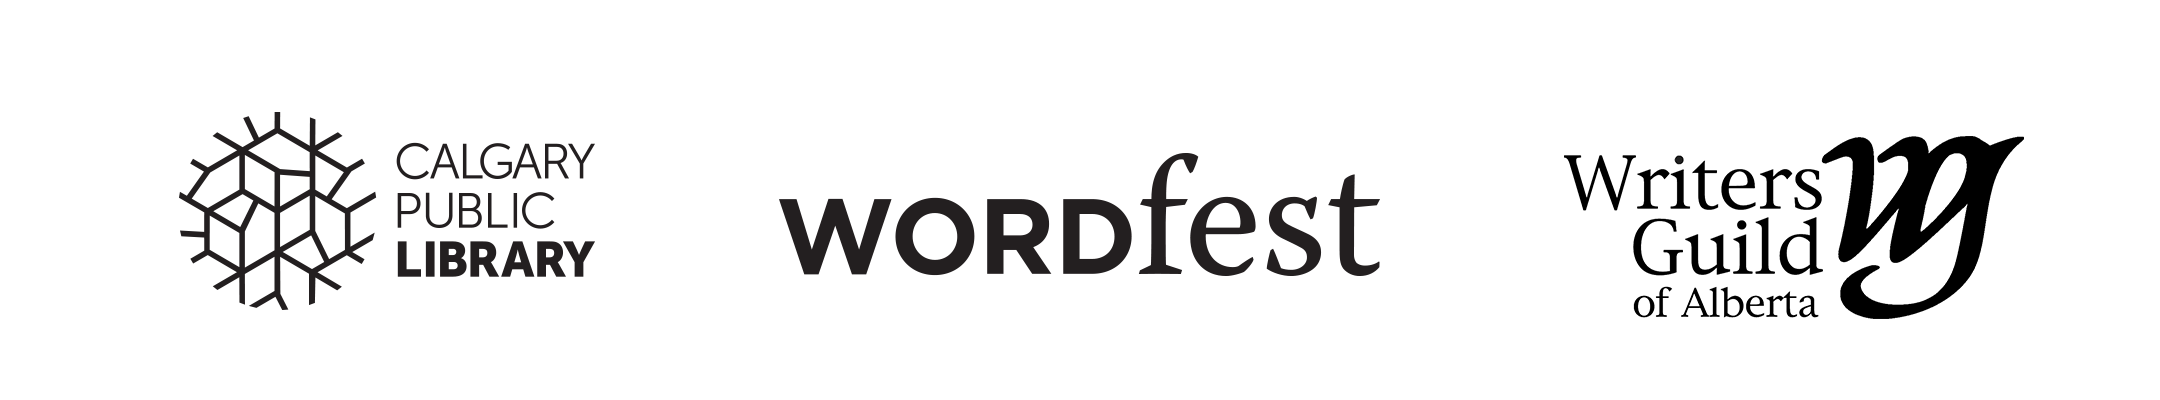 CPL Wordfest and WGA Logos